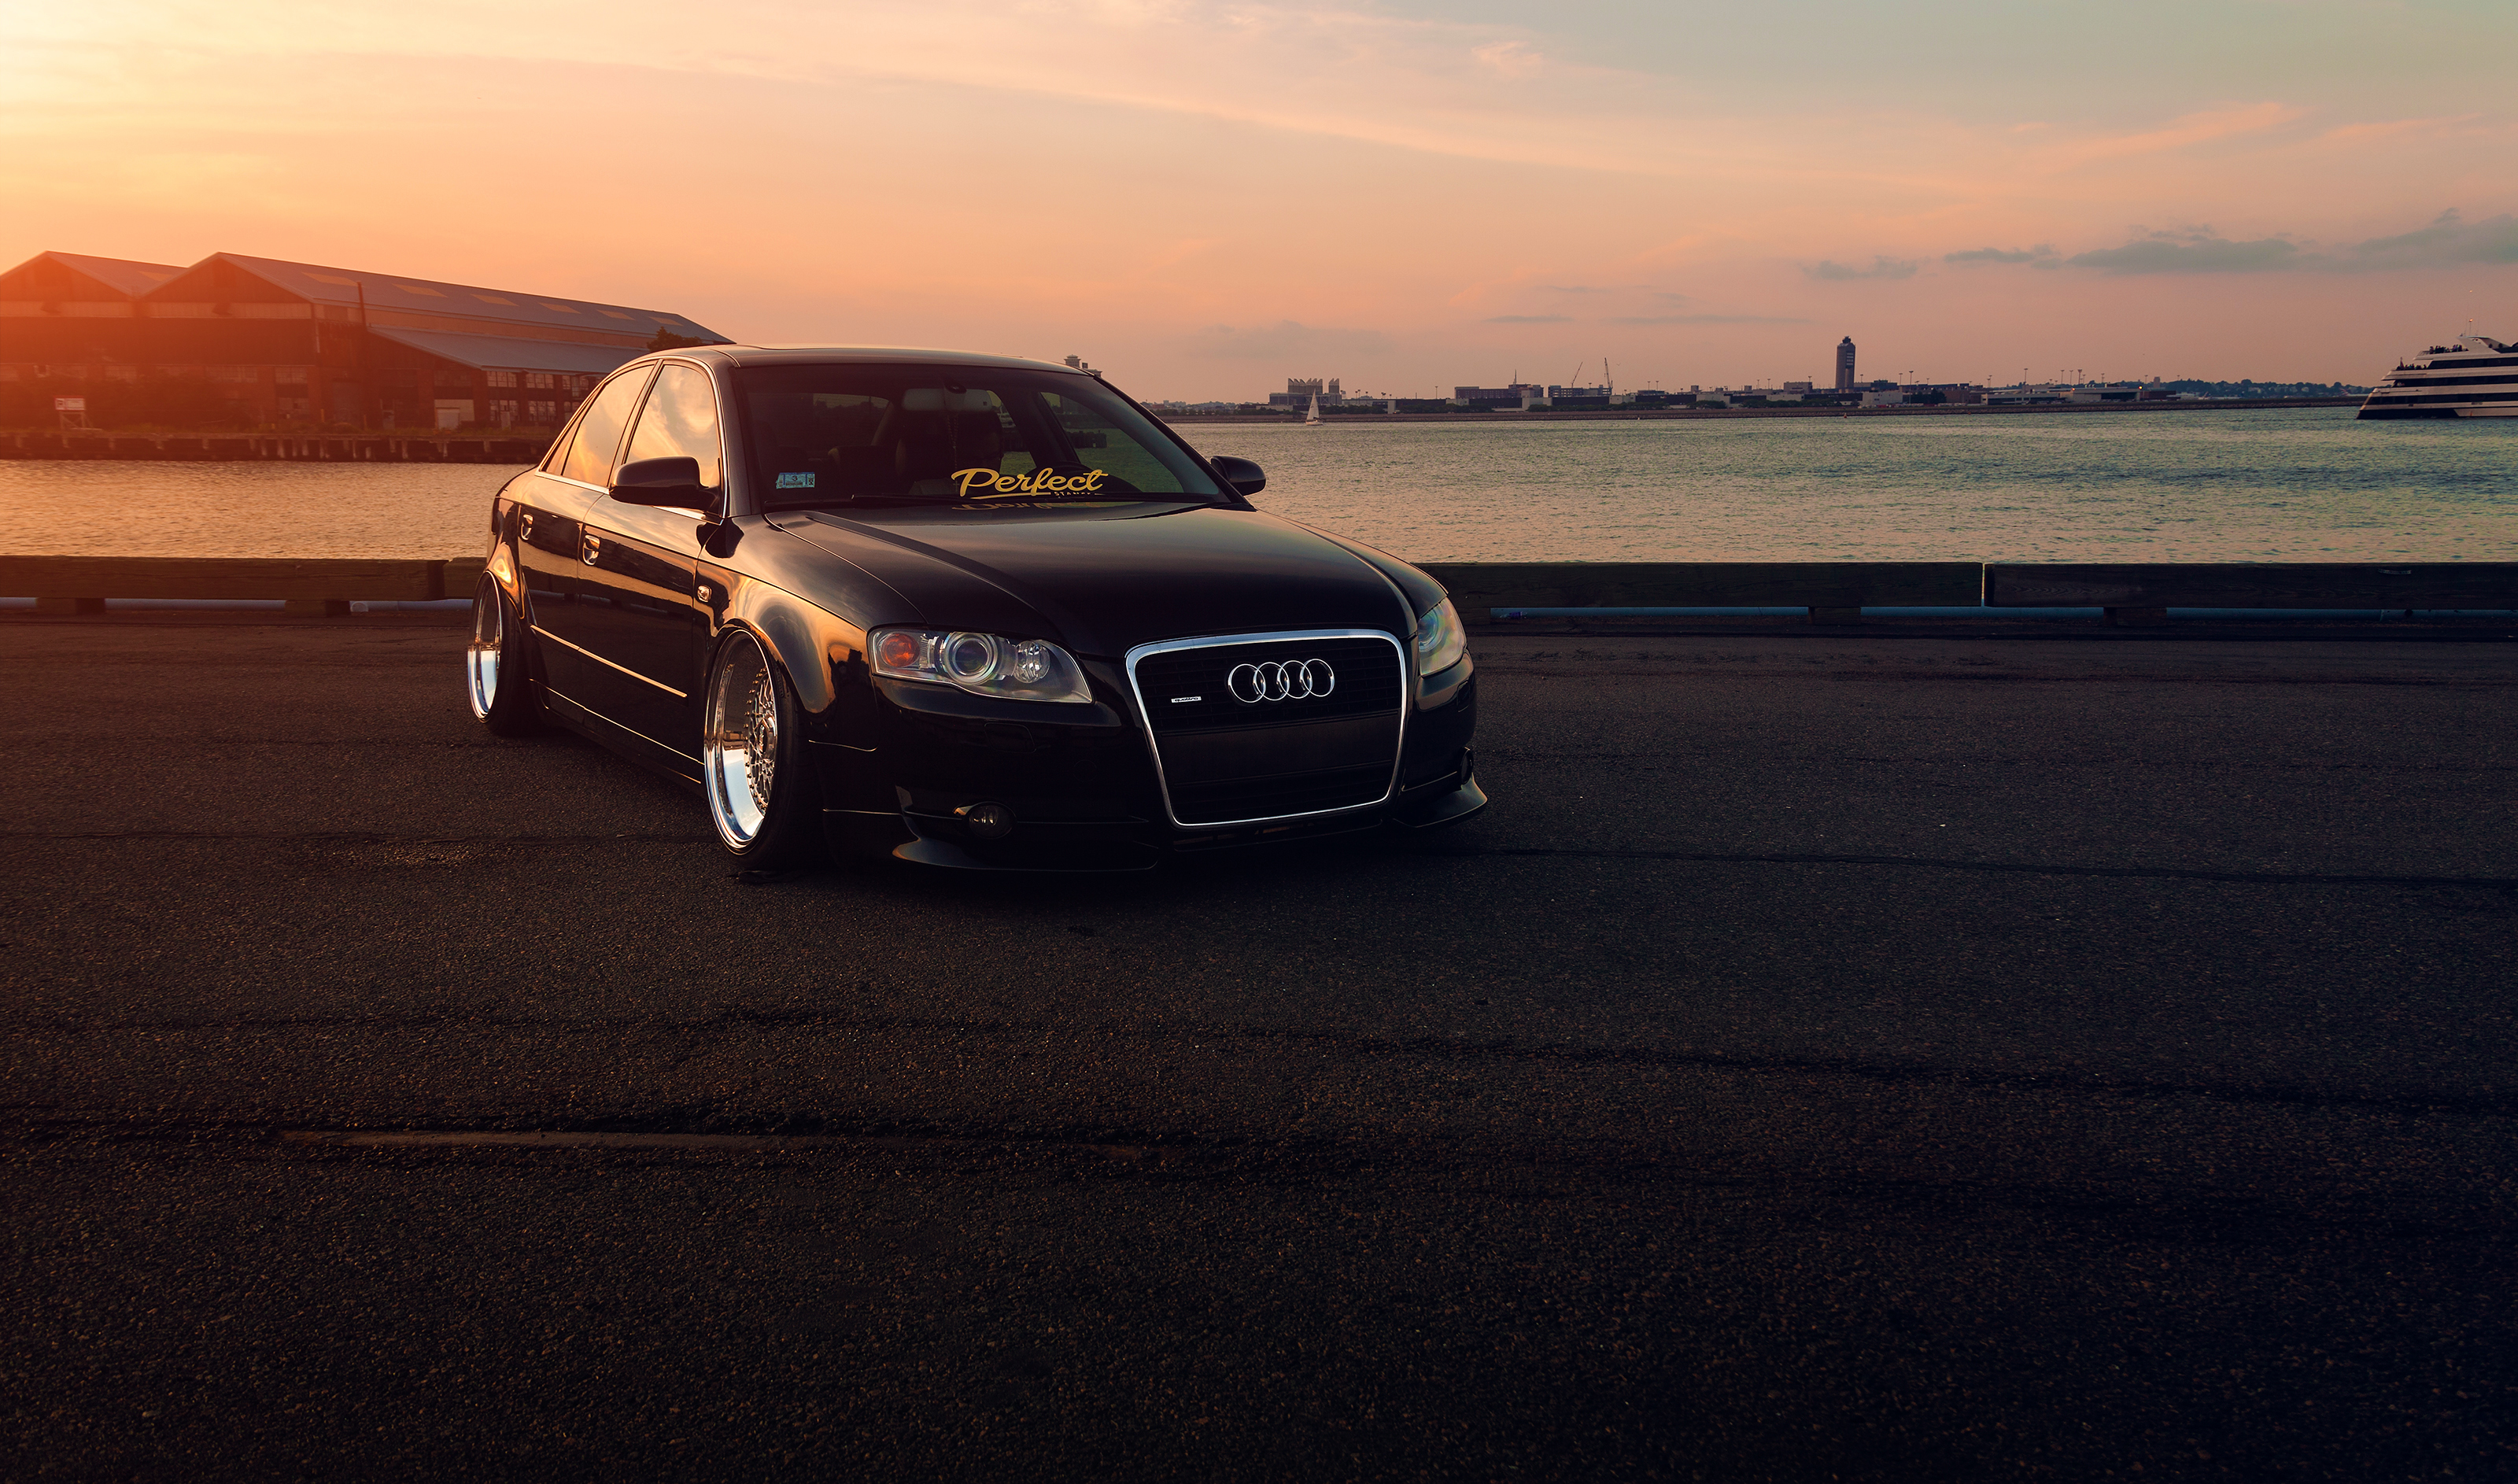 3200 X - Fondos De Pantalla Para Pc Audi , HD Wallpaper & Backgrounds